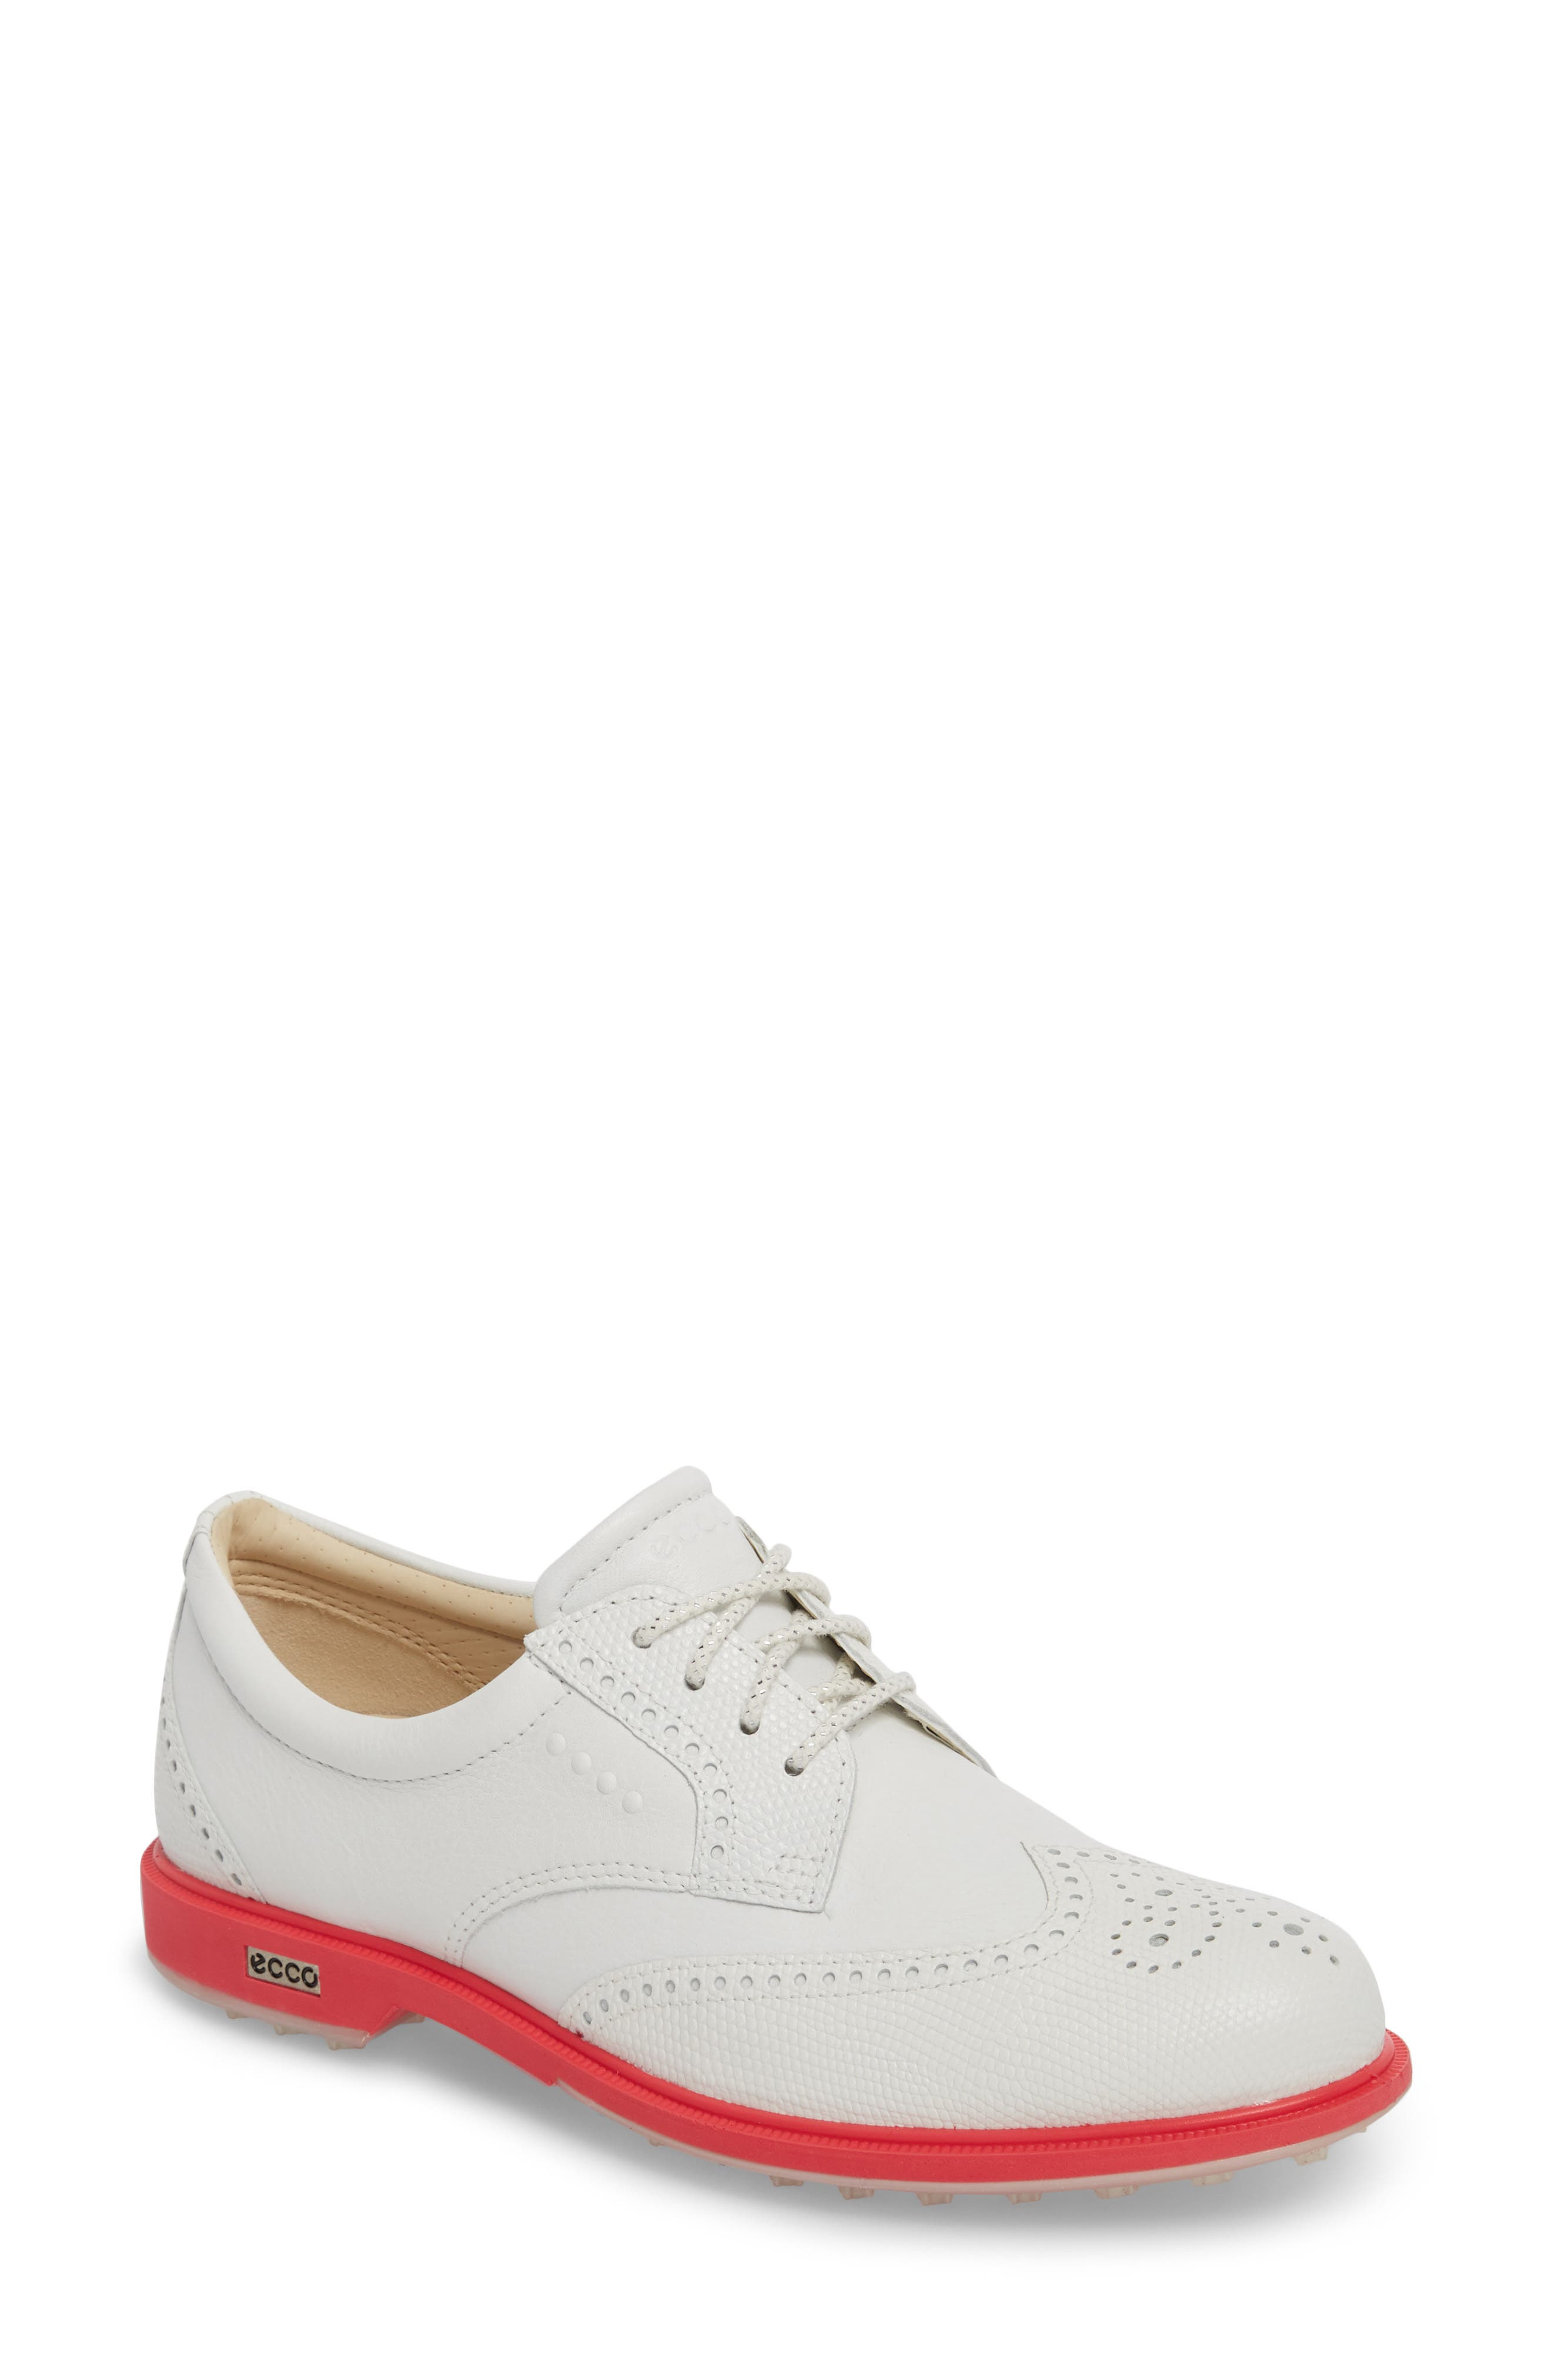 'Tour' Hybrid Wingtip Golf Shoe,                             Main thumbnail 1, color,                             WHITE LEATHER/ RED